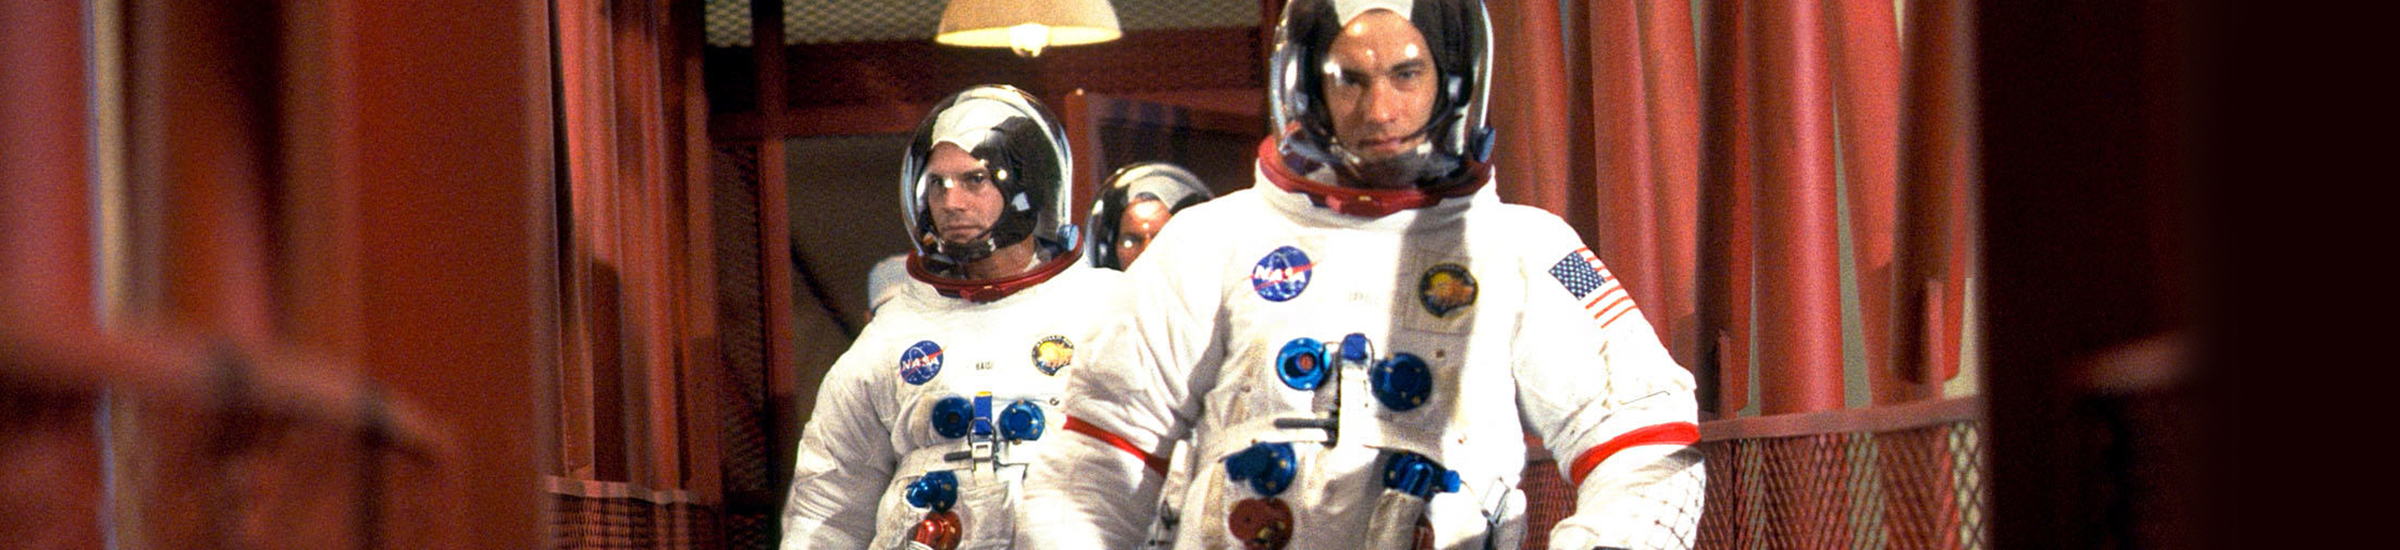 Apollo 13 Film with Live Orchestra Houston Symphony